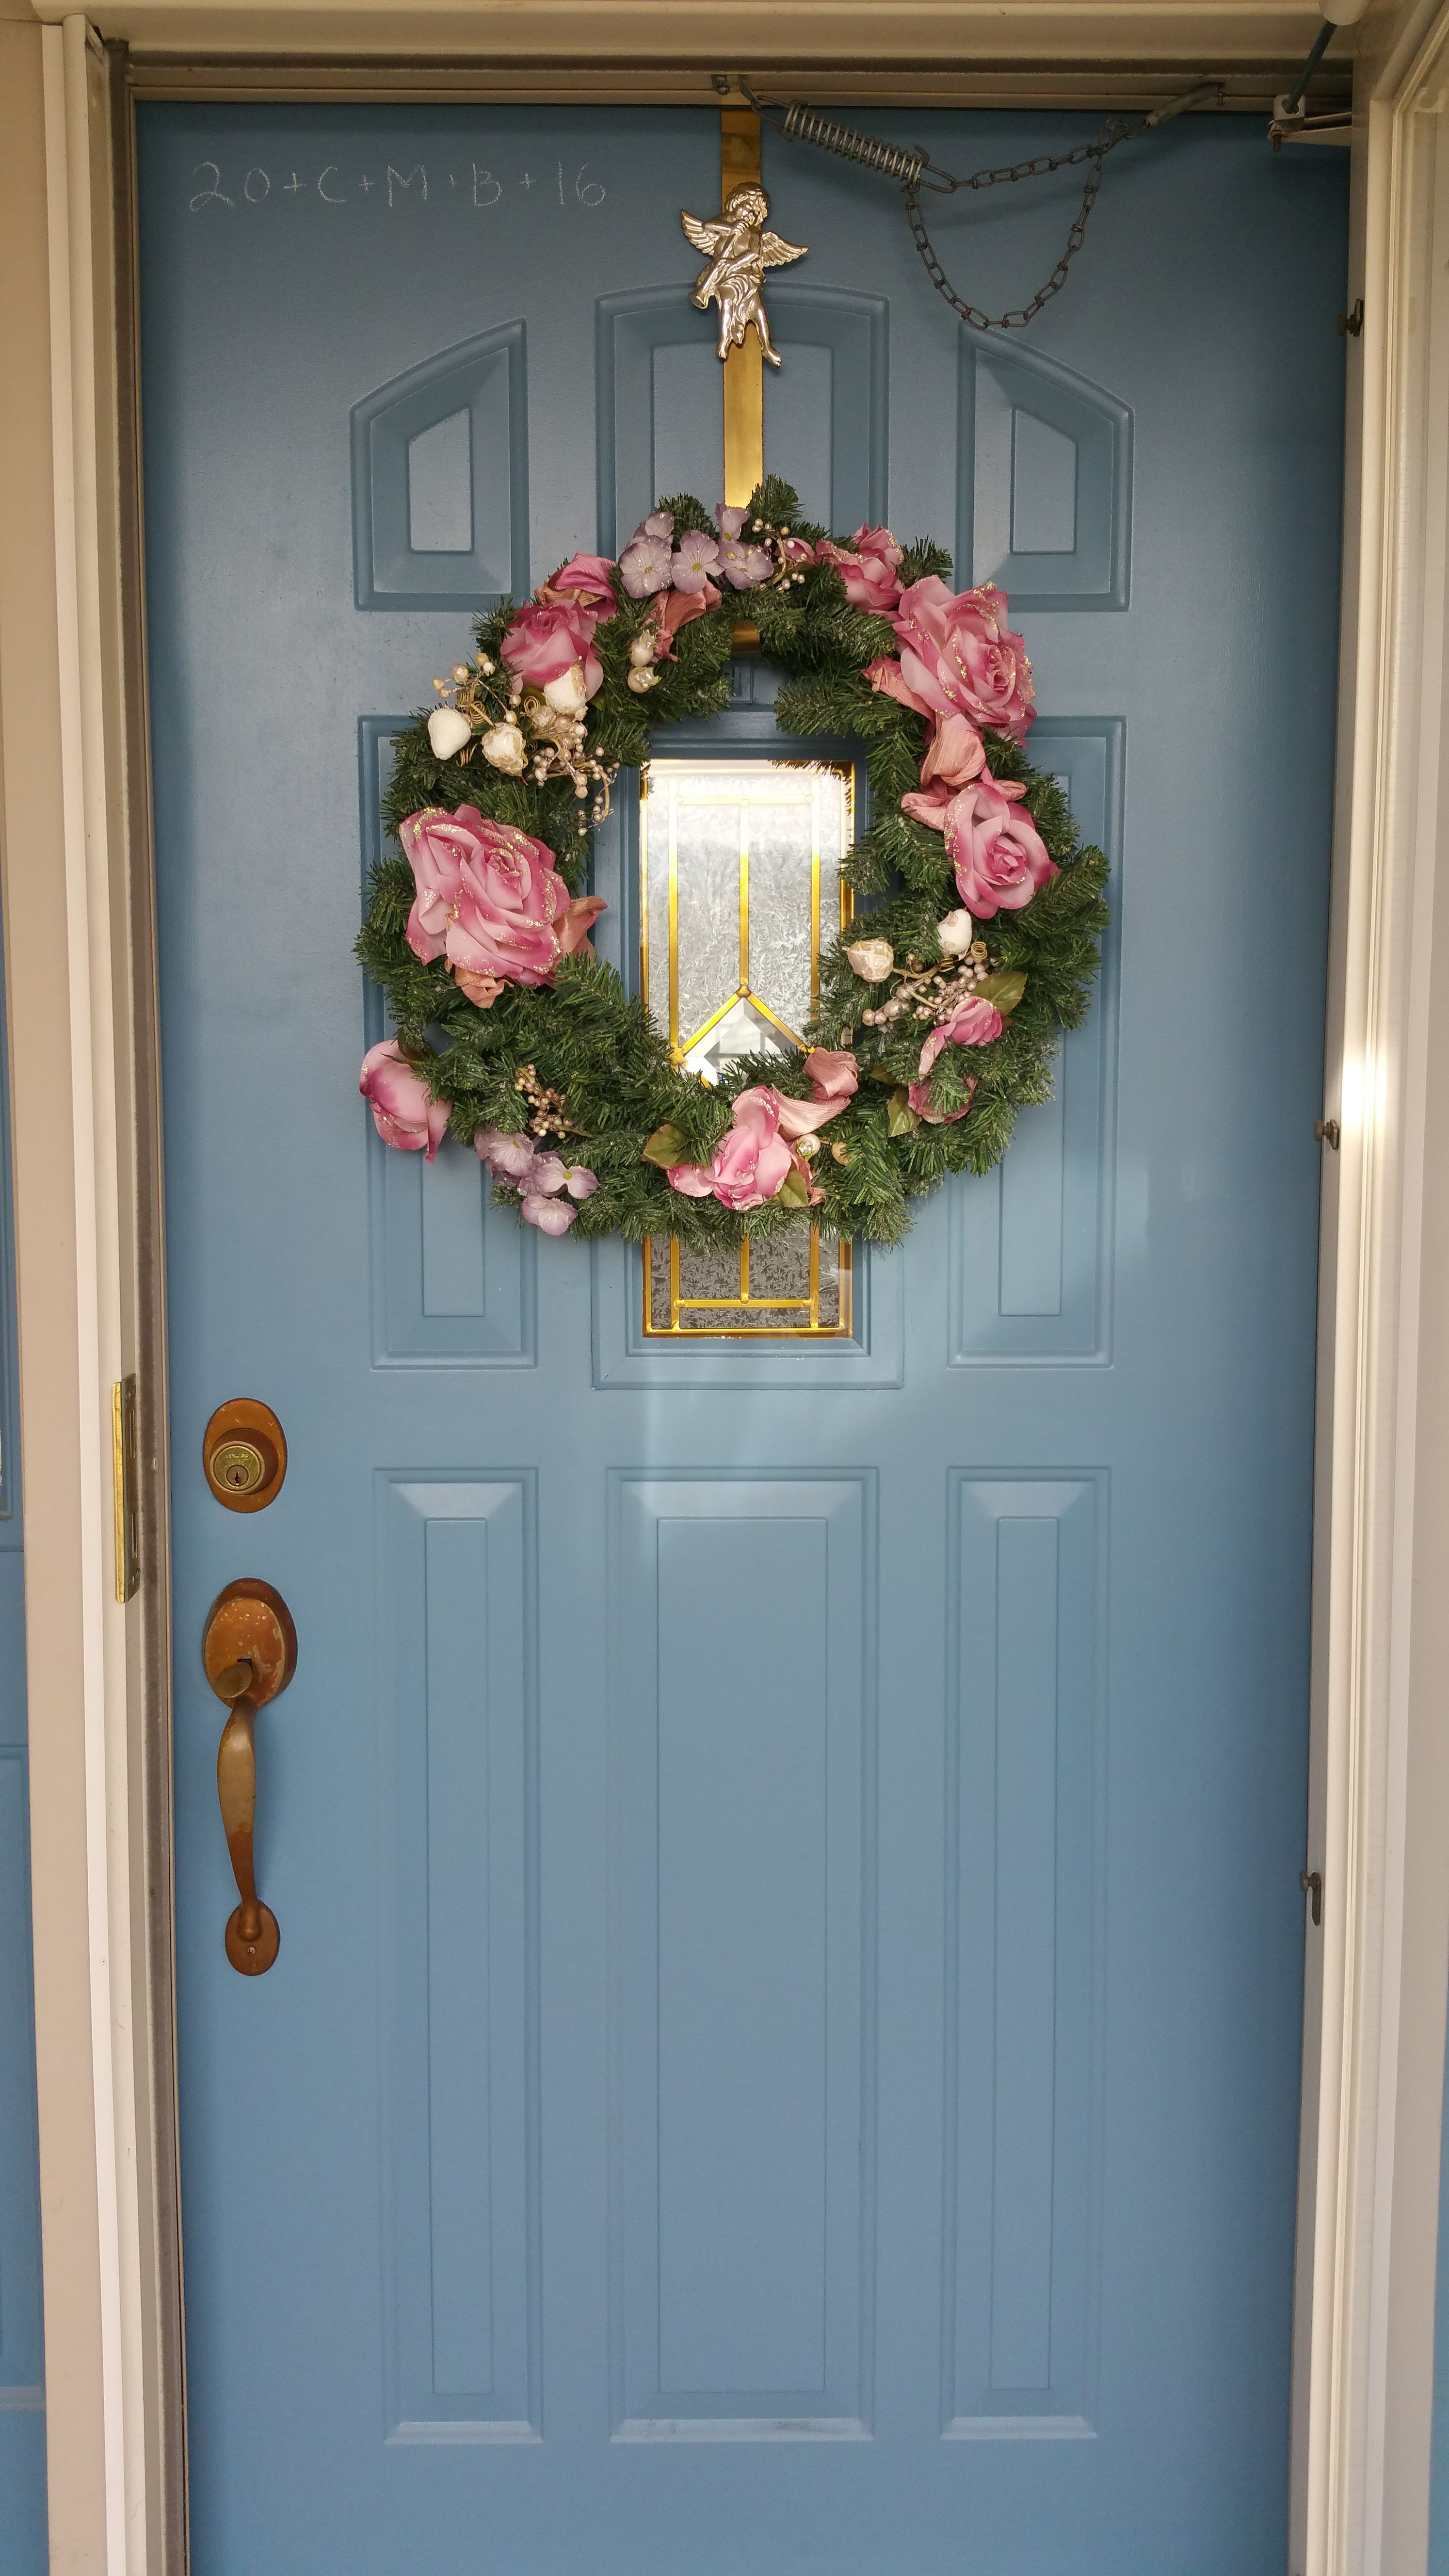 A Christmas wreath adorning an American home, with the door chalked for Epiphanytide and the wreath hanger bearing a placard of the Angel Gabriel.